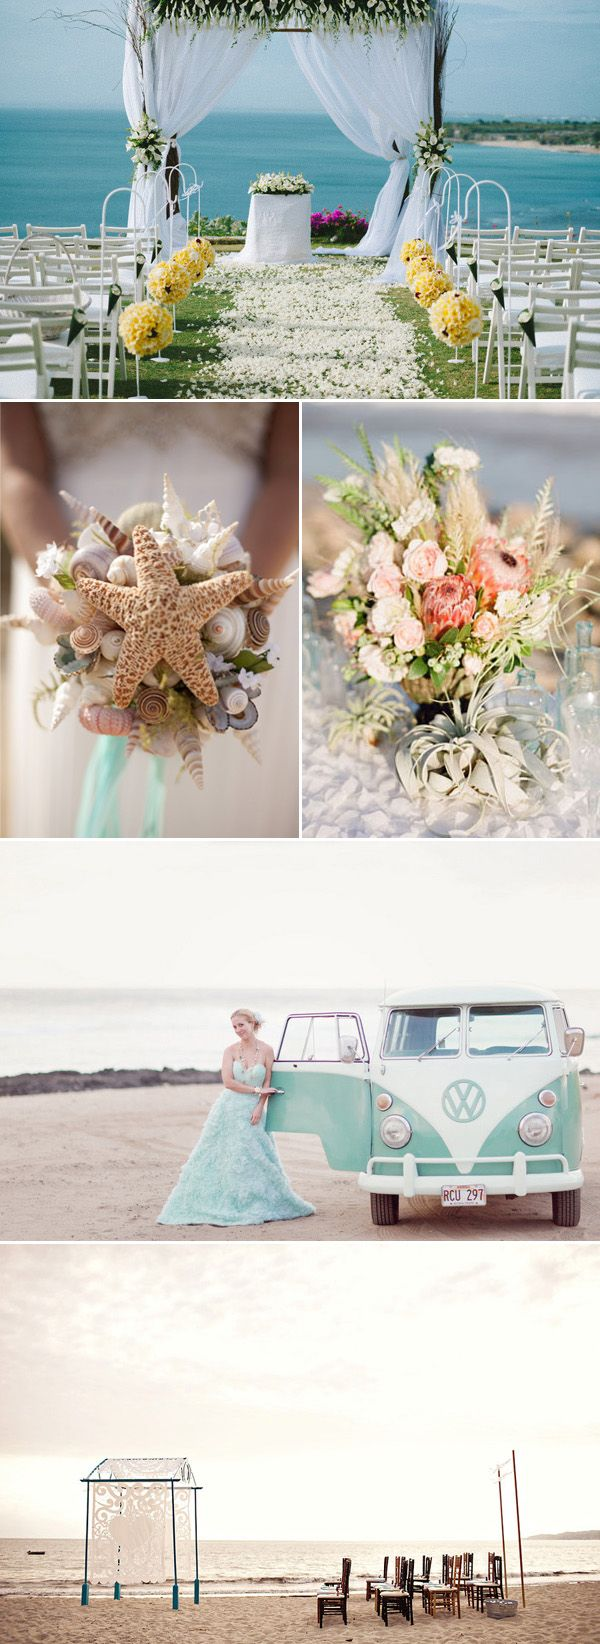 Have you ever imagined yourself marrying barefoot in the sand at an intimate beach wedding? If so, you probably also want to incorporate your own signature styl